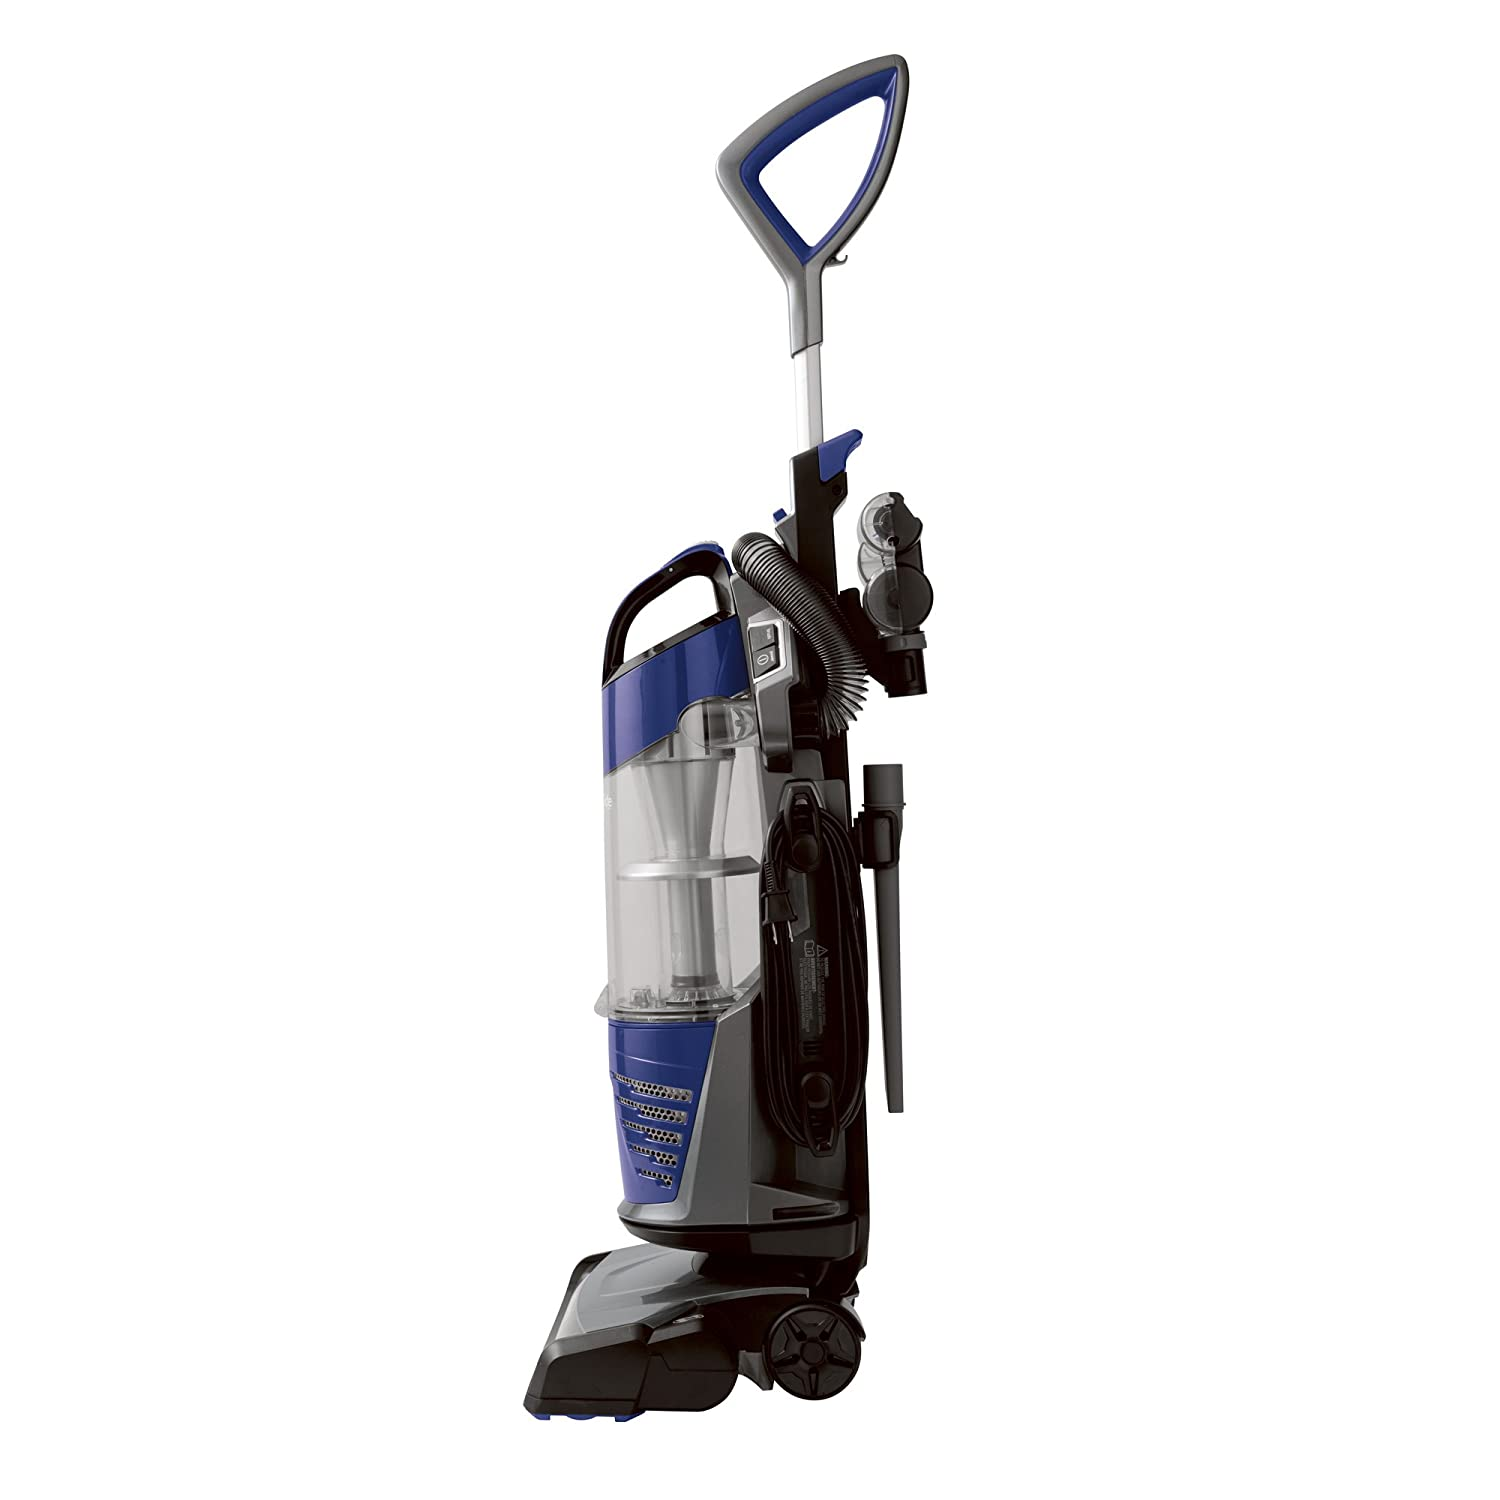 BISSELL PowerGlide Pet Bagless Upright Vacuum with Lift-Off Technology, 2763